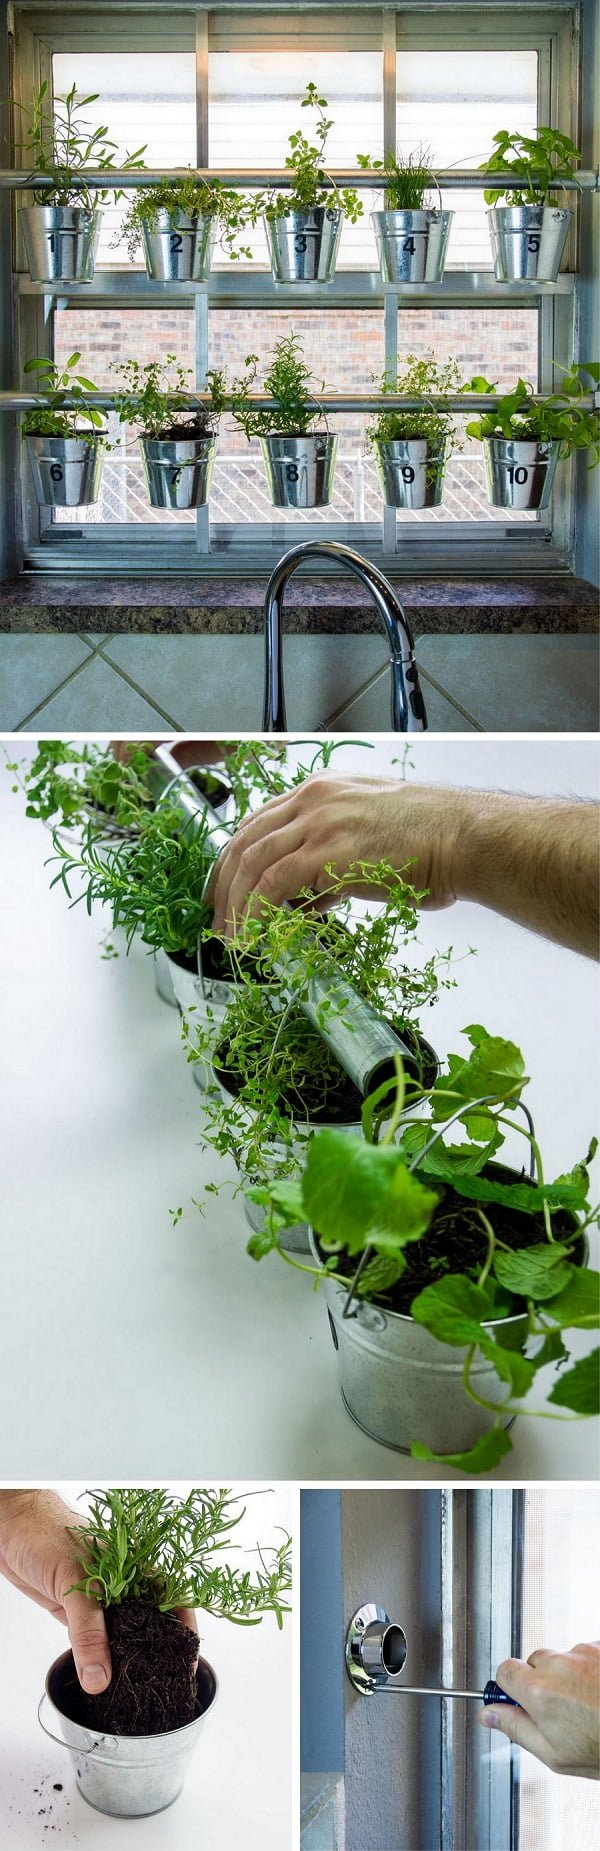 How to build a DIY window mounted herb garden